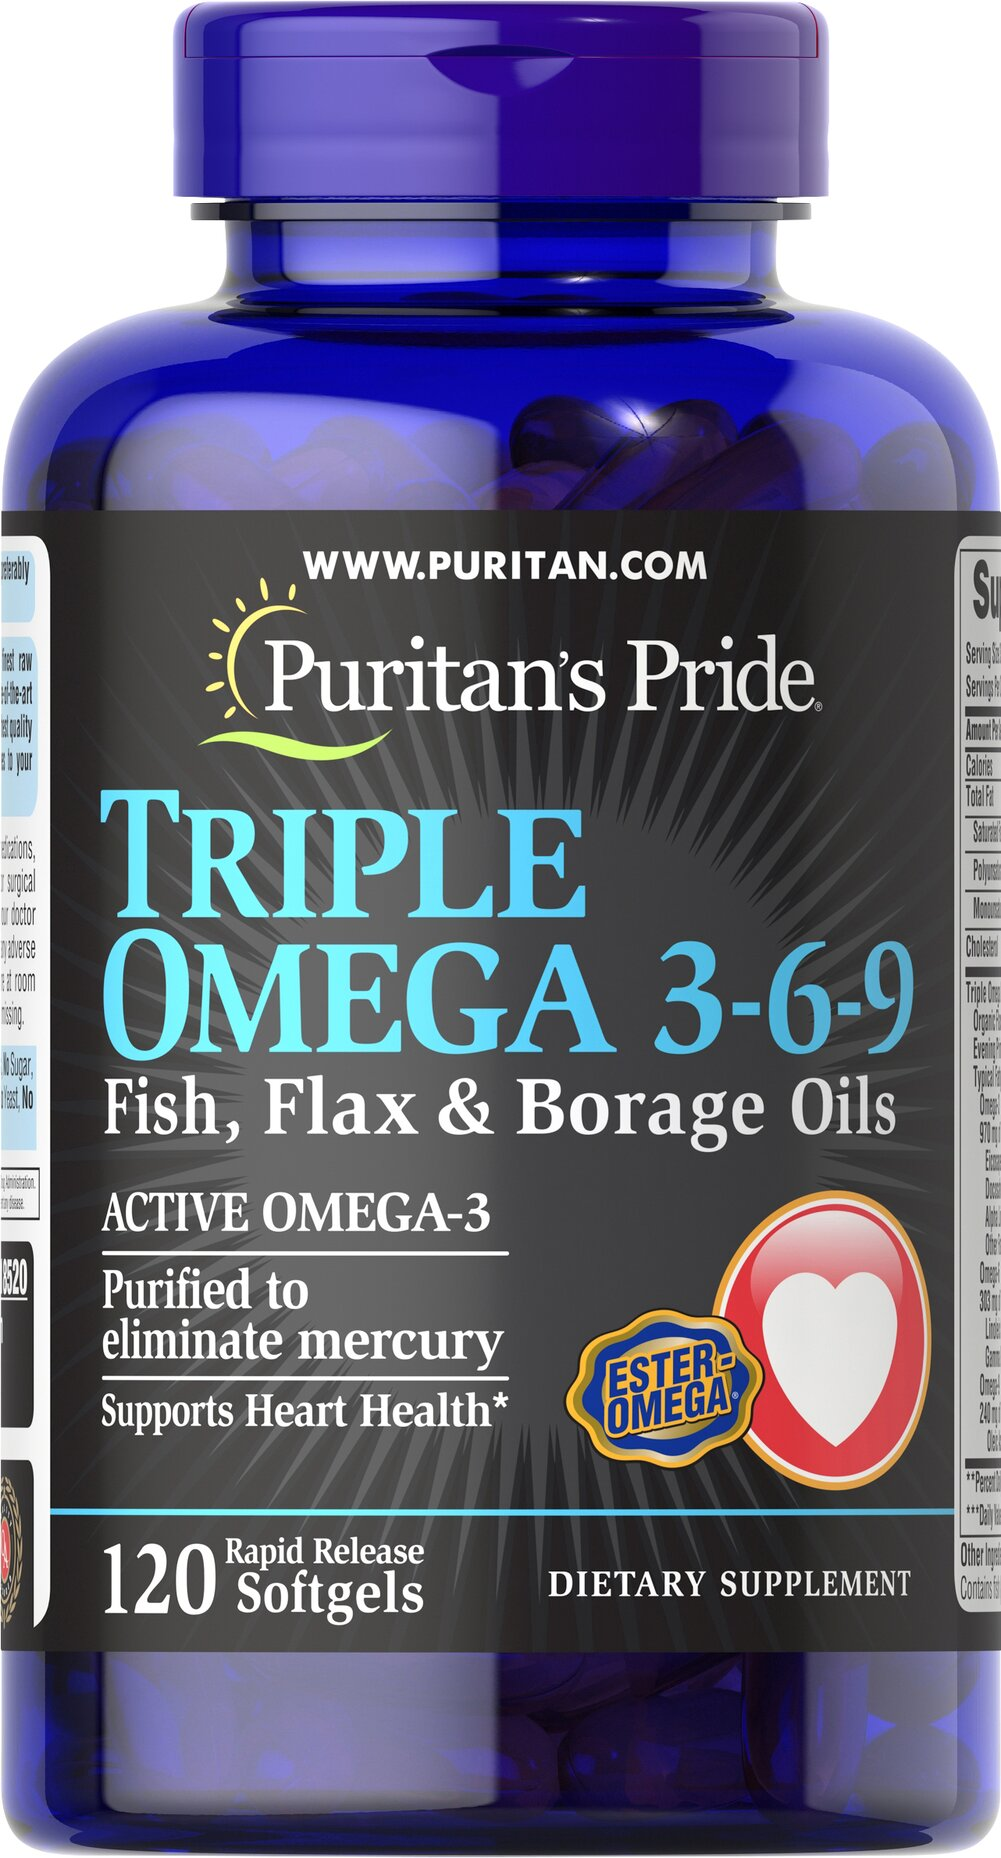 Triple Omega 3-6-9 Fish, Flax & Borage Oils Thumbnail Alternate Bottle View